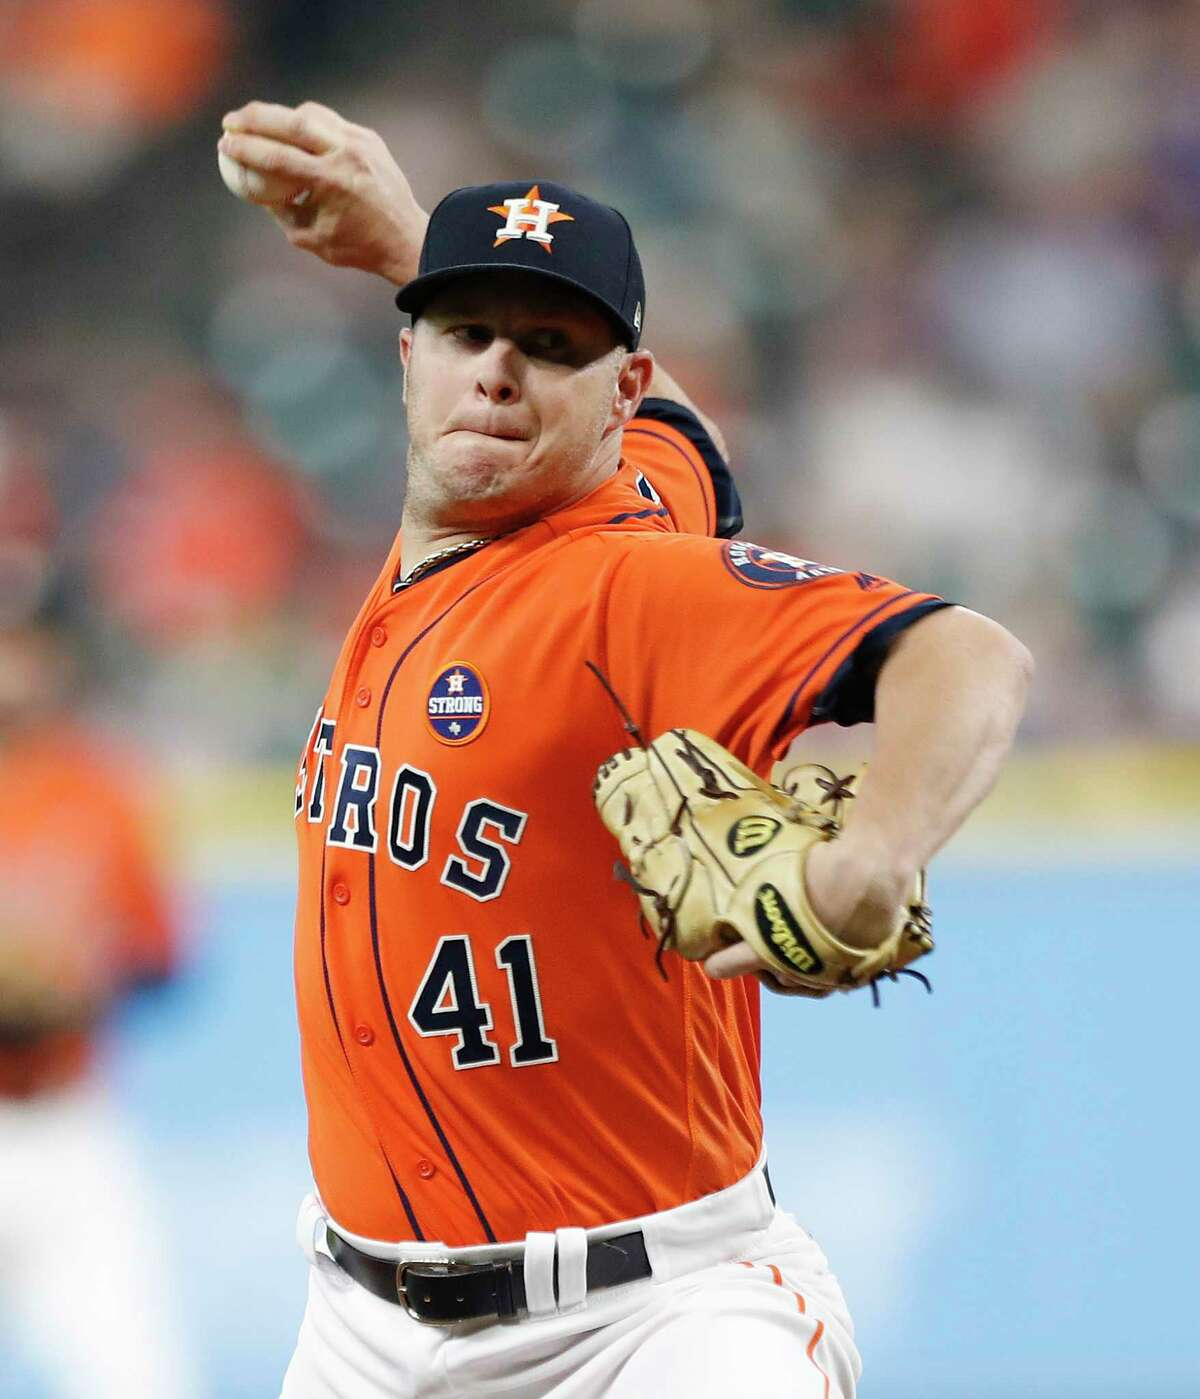 Brad Peacock was comfortable in a relief role for the Astros in 2017, posting a 1.77 ERA in 201⁄3 innings out of the pen.